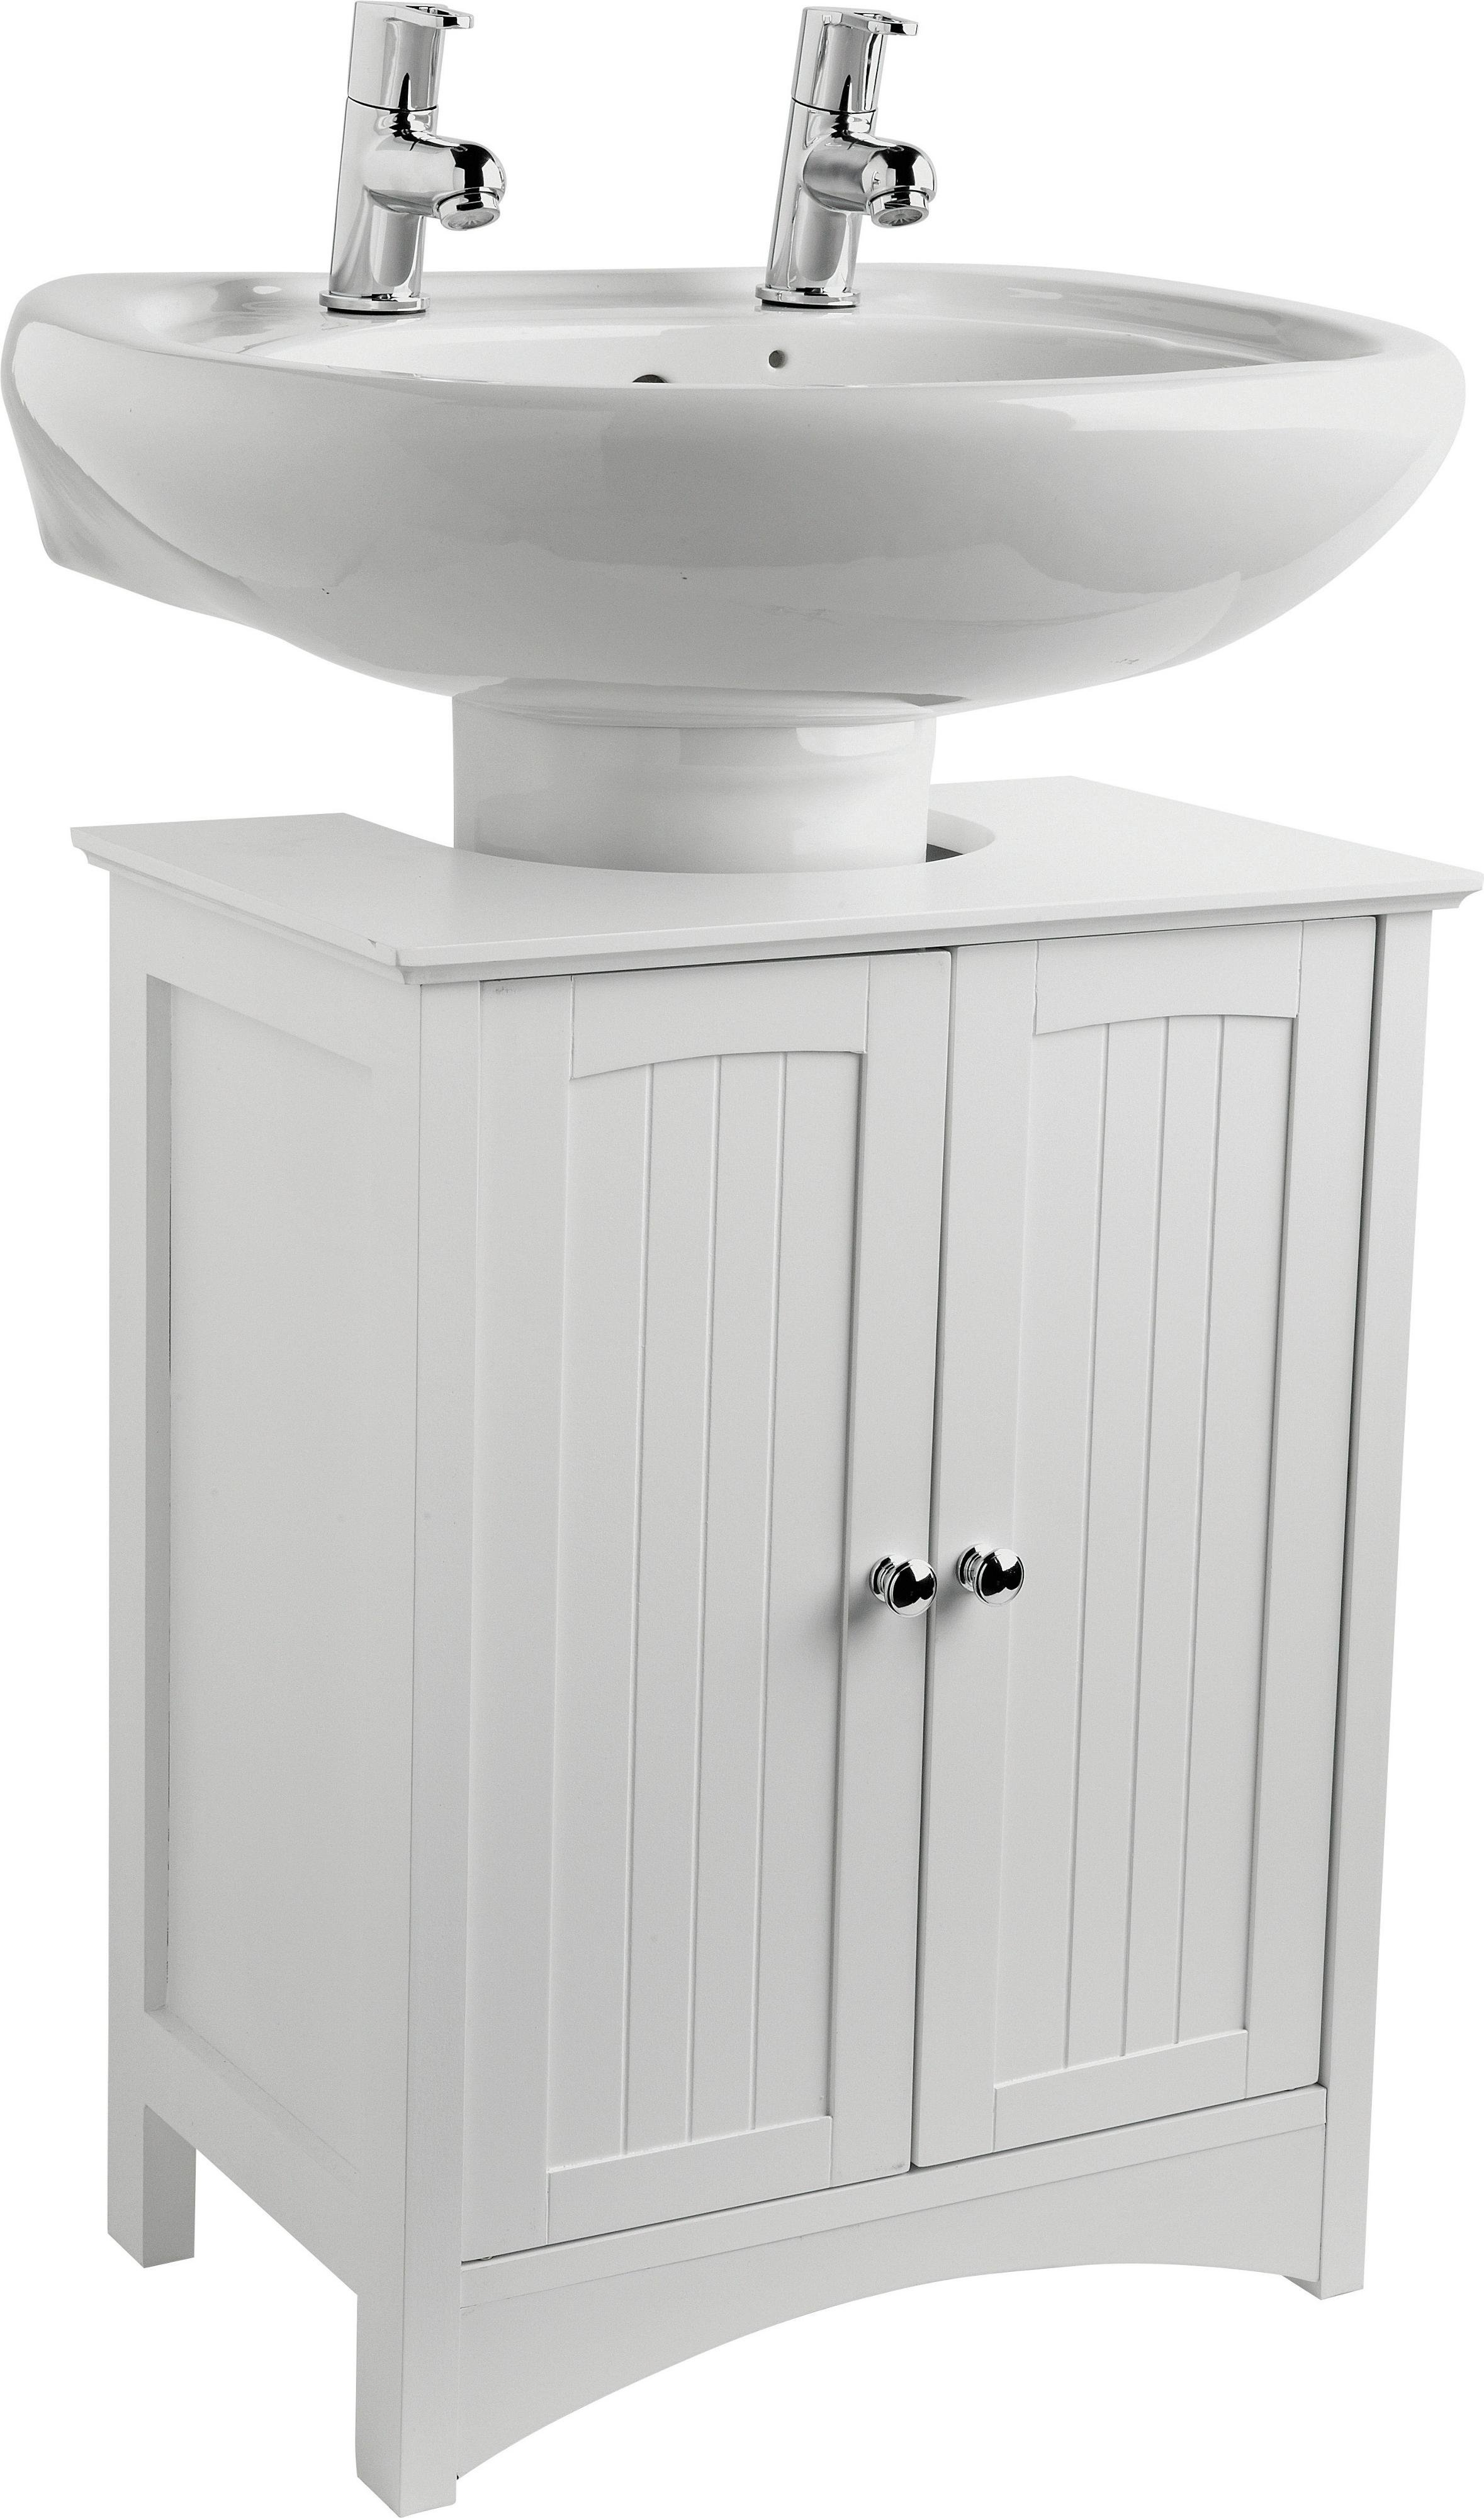 Tongue And Groove Bathroom Storage Unit White - Buy home tongue and groove under sink storage unit white at